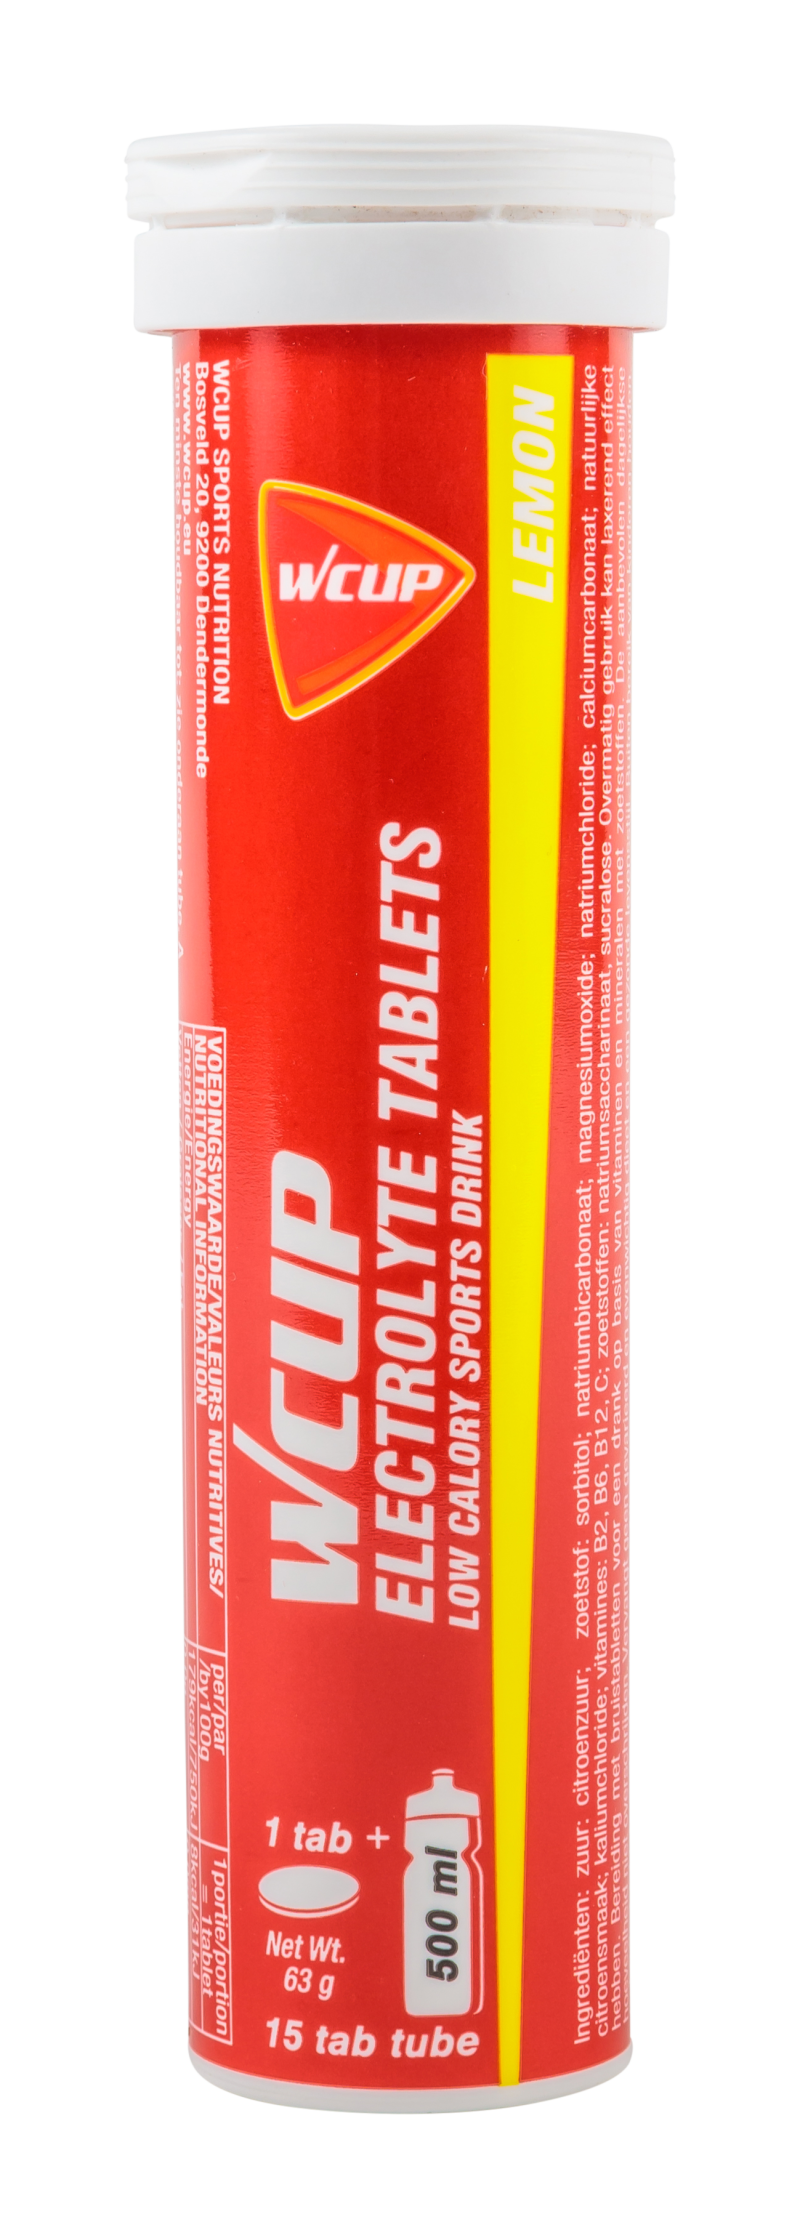 Wcup ELECTROLYTE TABLETS LEMON